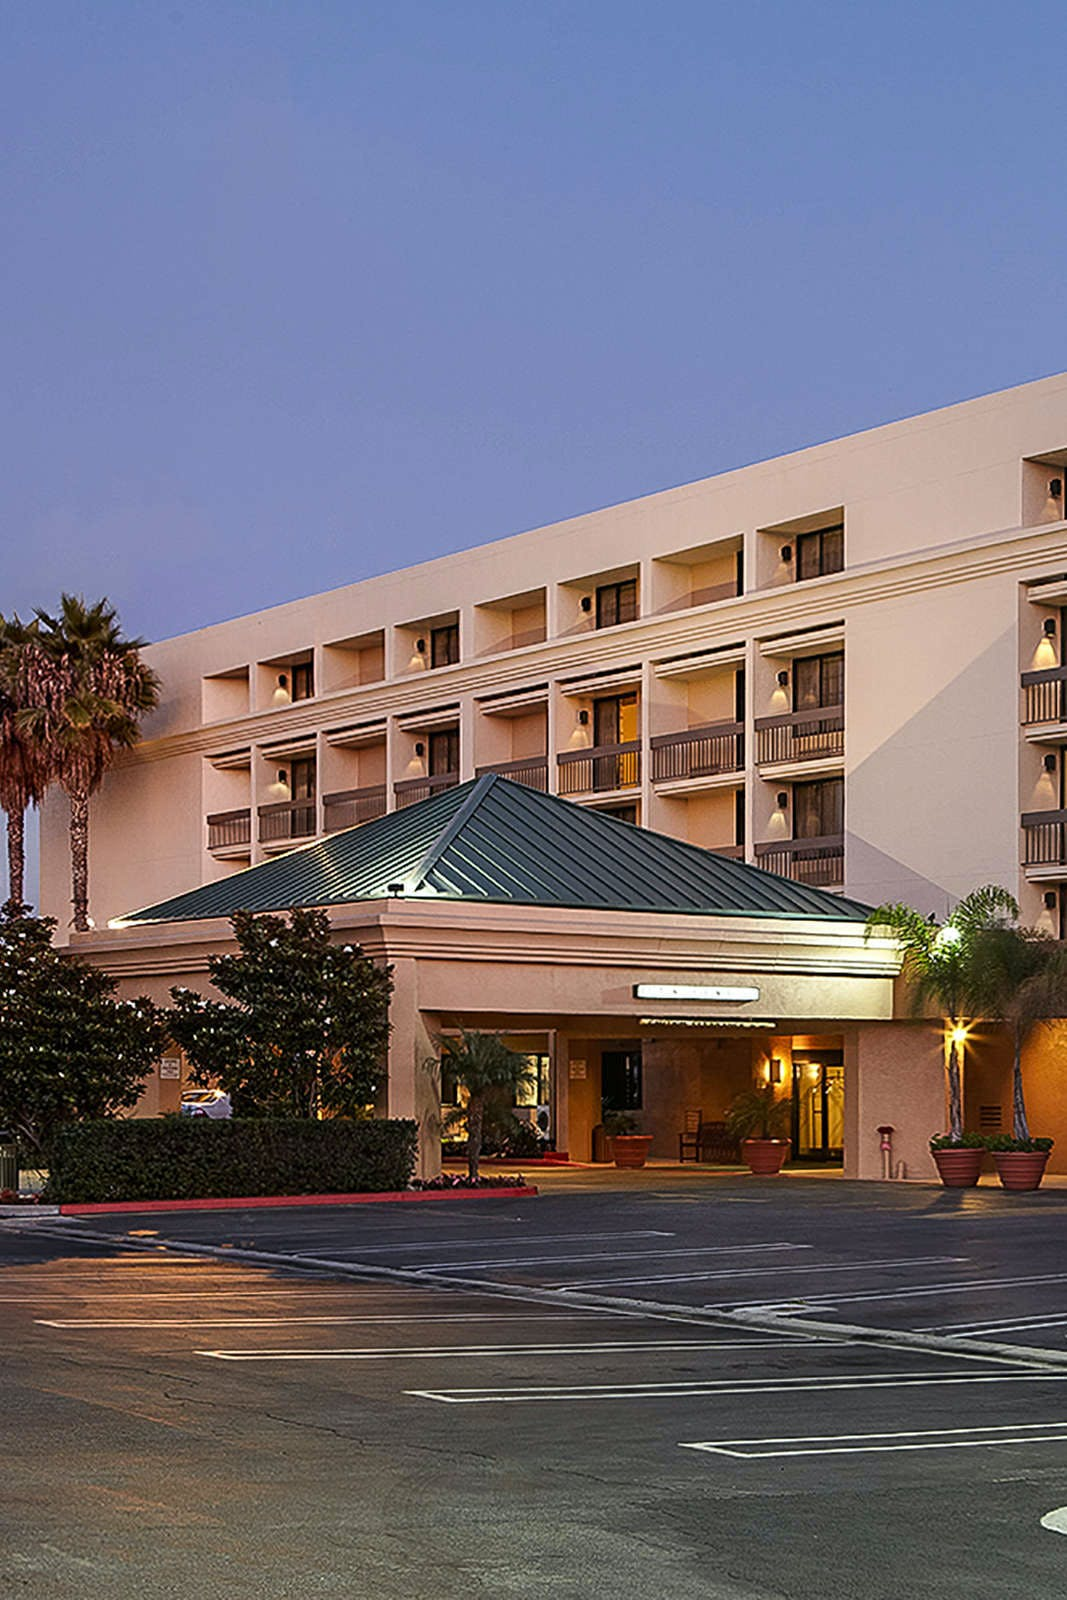 Hotel MDR - A Doubletree by Hilton